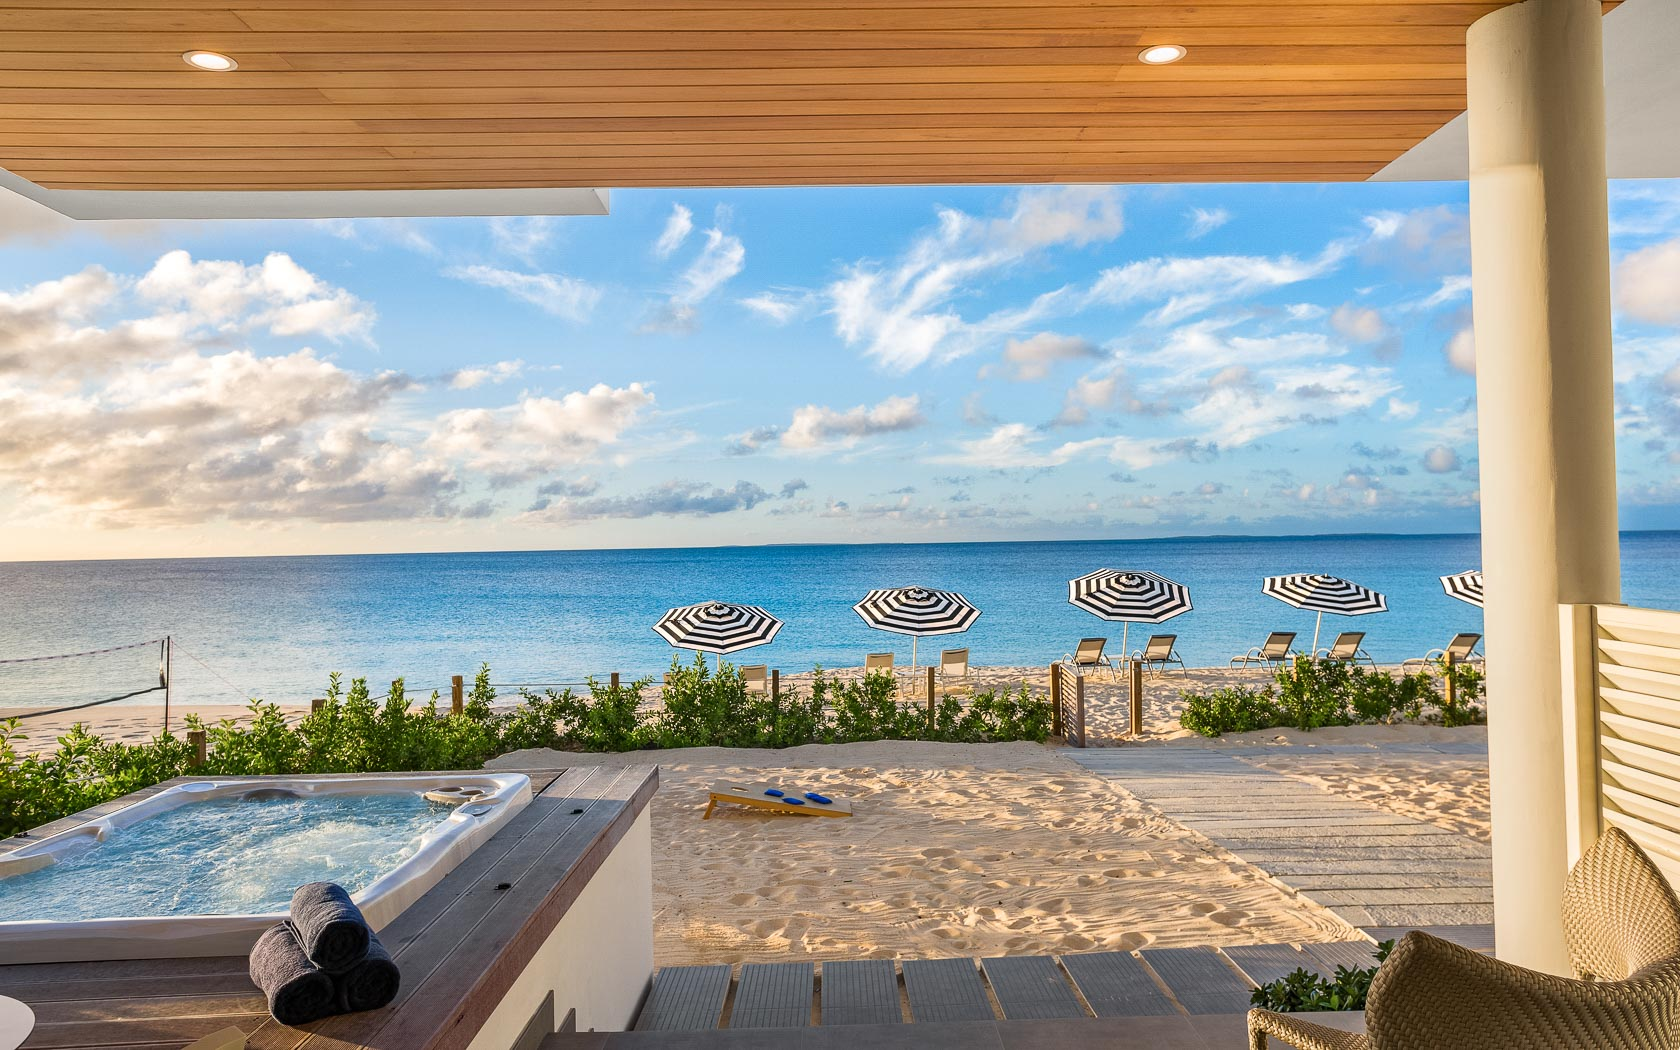 first floor patio view of beach with turquoise waters